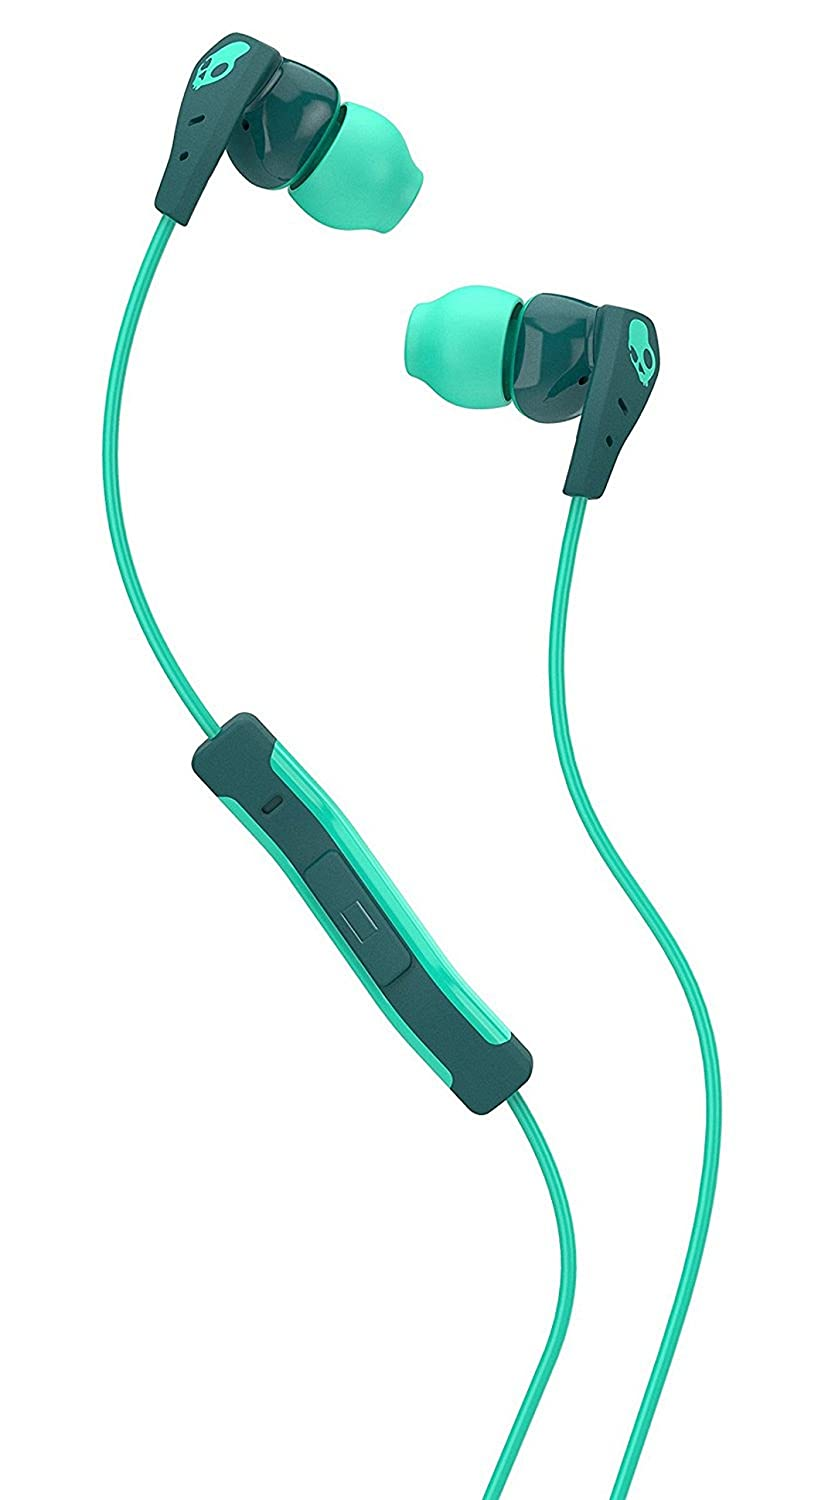 Skullcandy Headphone Jack Wiring Diagram Library Data Amazoncom Method In Ear Sweat Resistant Sports Earbud Teal